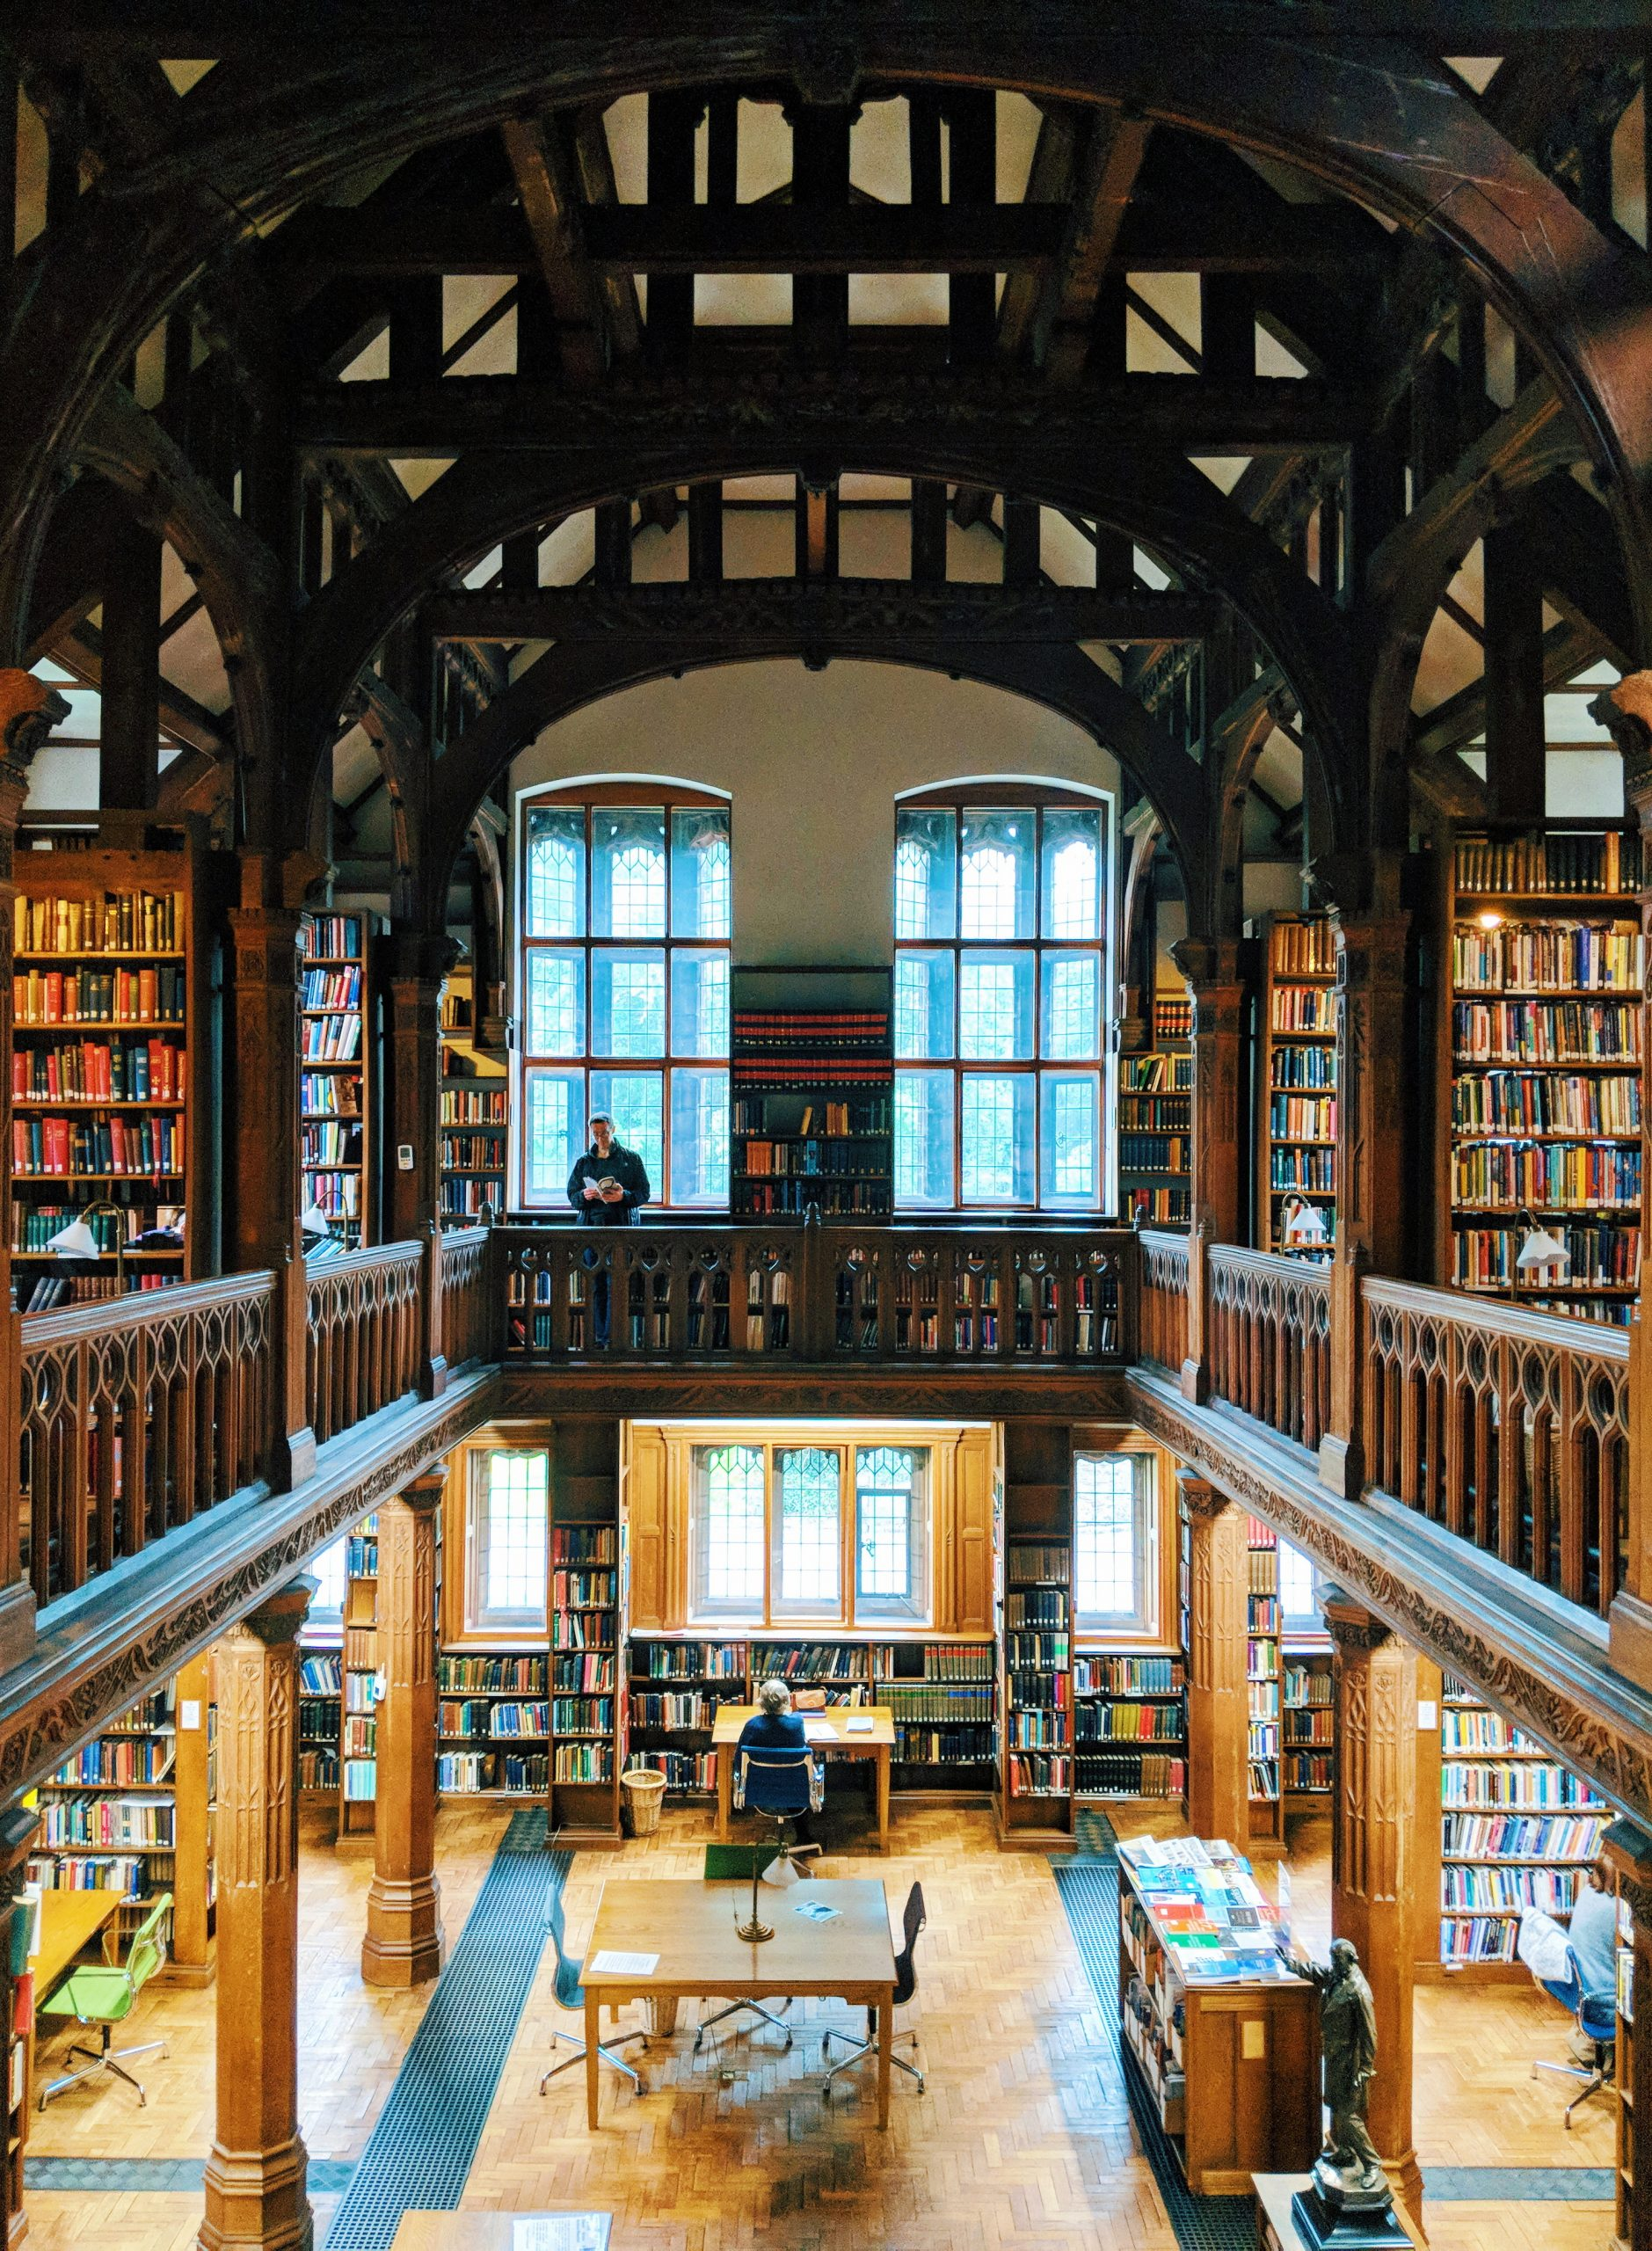 An overnight stay at Gladstone's Library